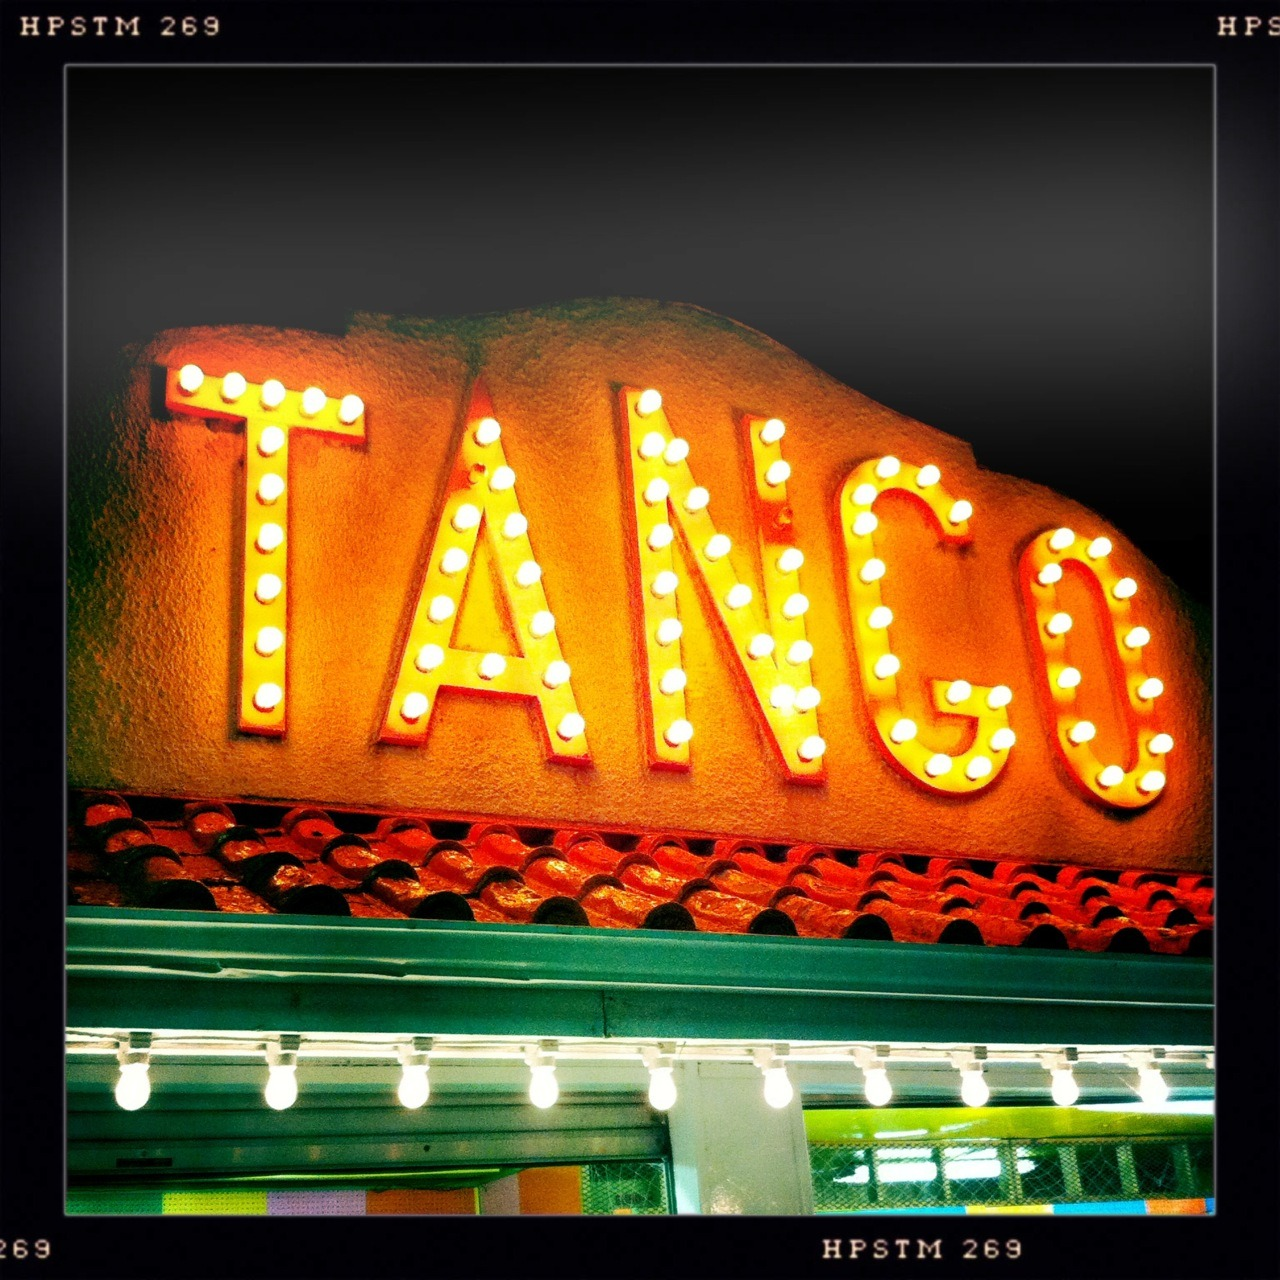 Tango! Probably what originally went on in this now-arcade, too.